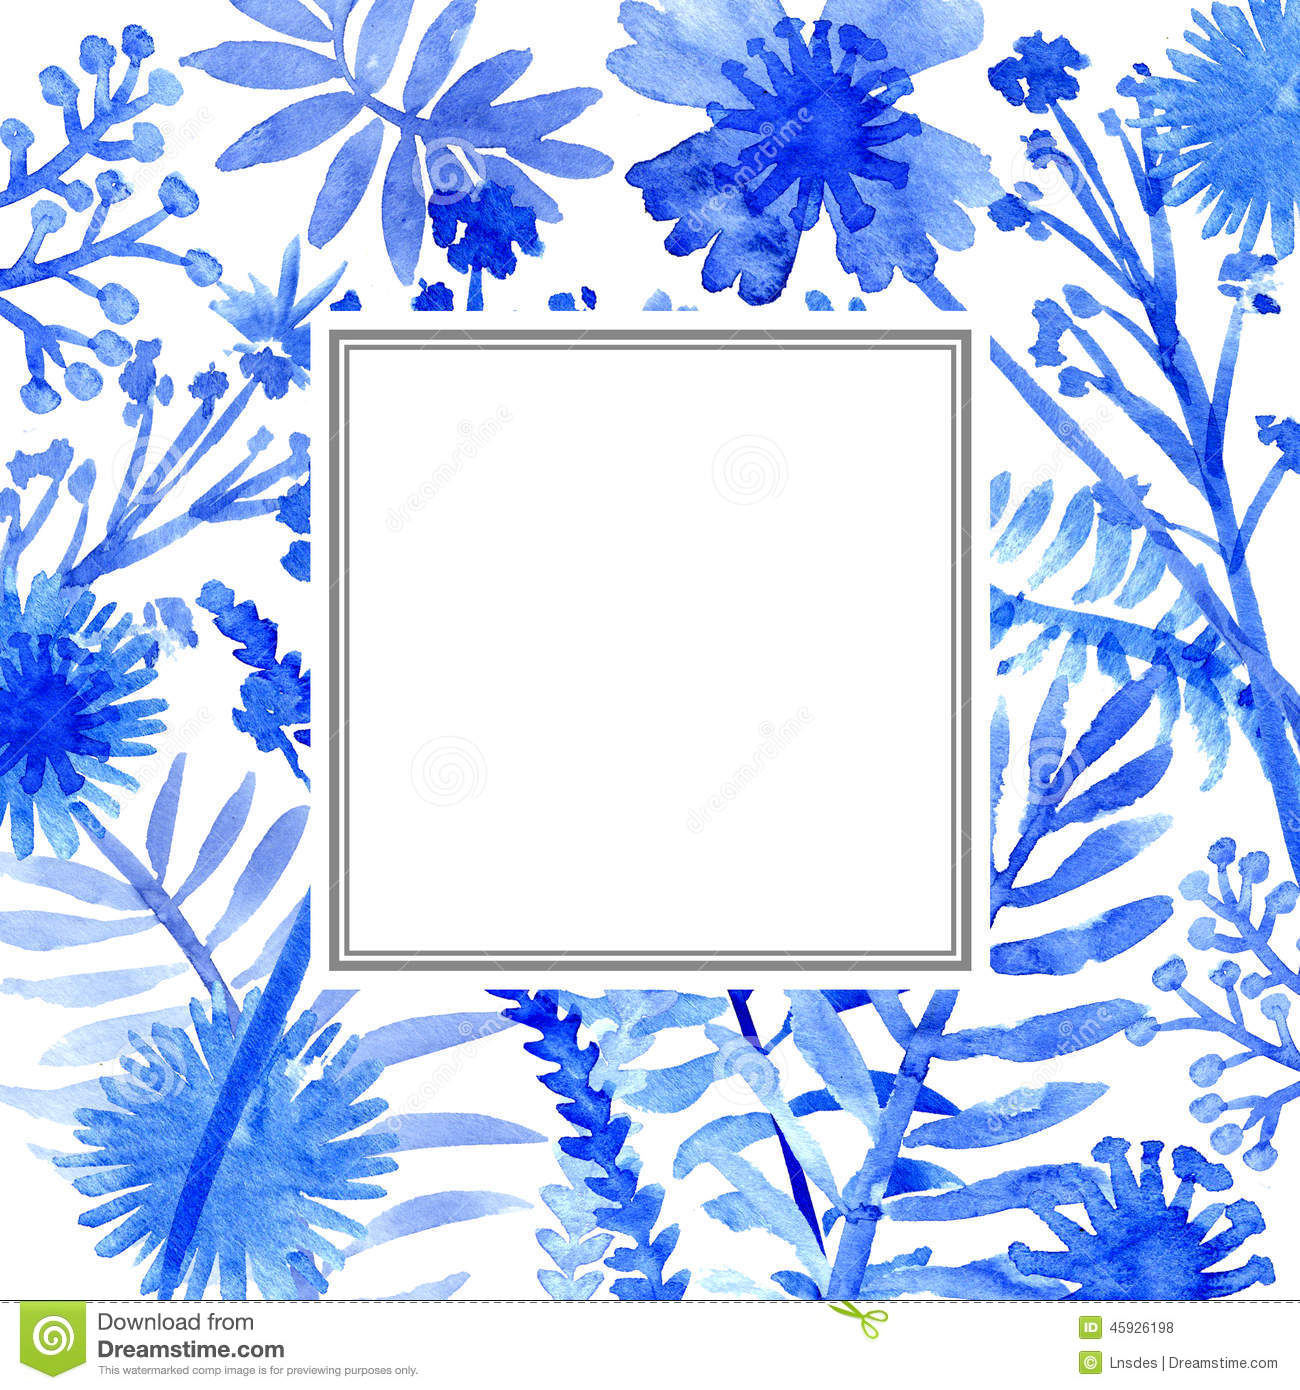 Watercolor flowers frame template card stock illustration for Watercolor painting templates free